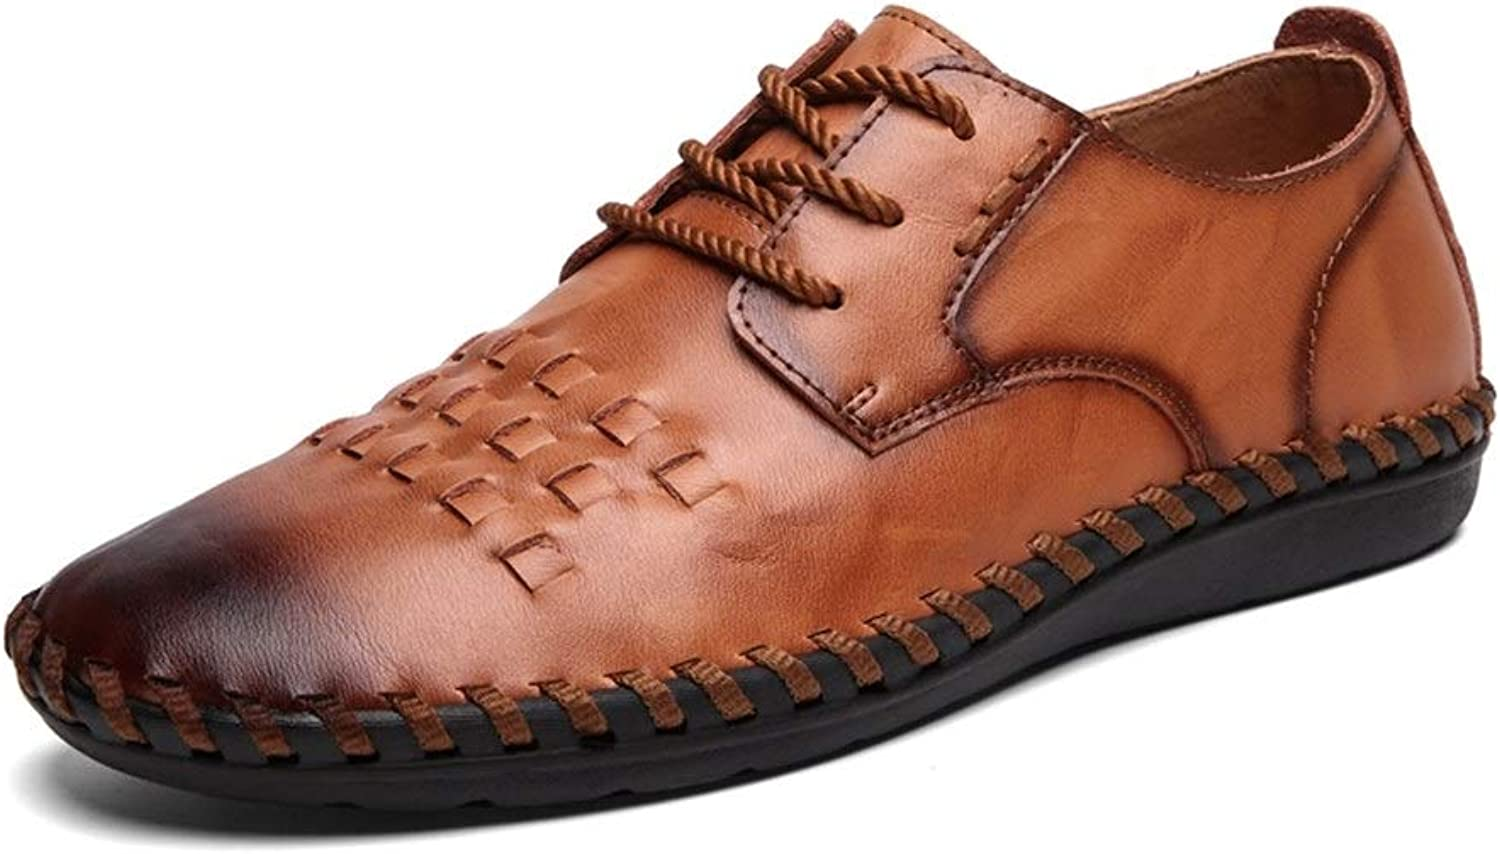 Easy Go Shopping Oxford shoes For Men Formal shoes Lace Up OX Leather Light And Flexible shoes Cricket shoes (color   DarkBrown, Size   8.5 UK)